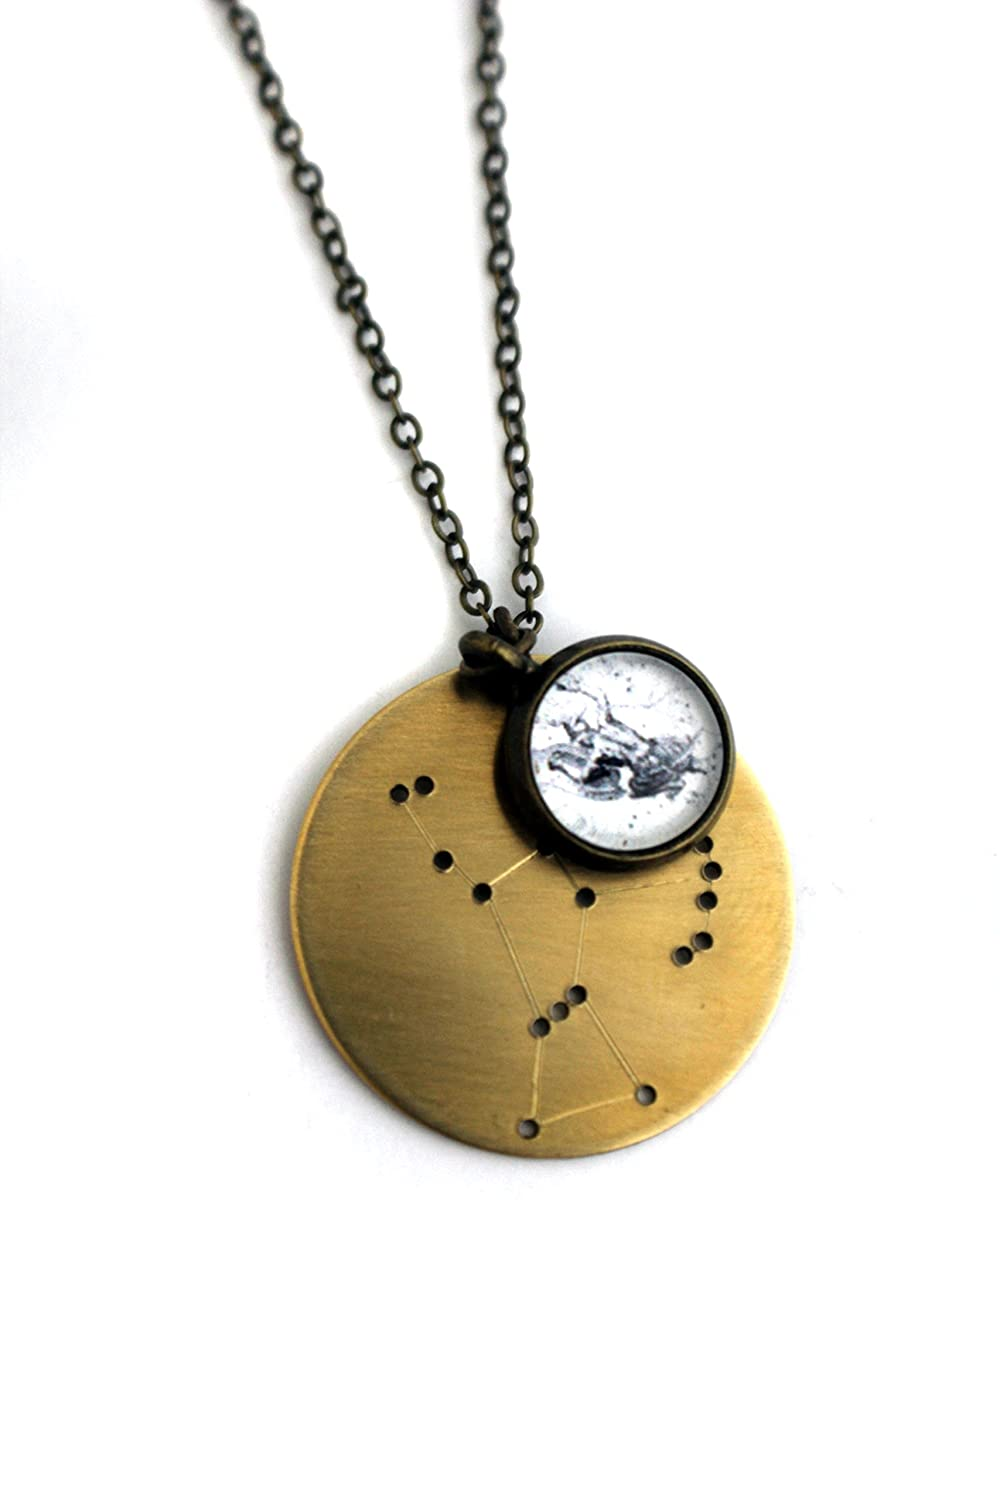 Amazon zodiac constellation necklace pendant silver or gold amazon zodiac constellation necklace pendant silver or gold brass gold tone aquarius jewelry aloadofball